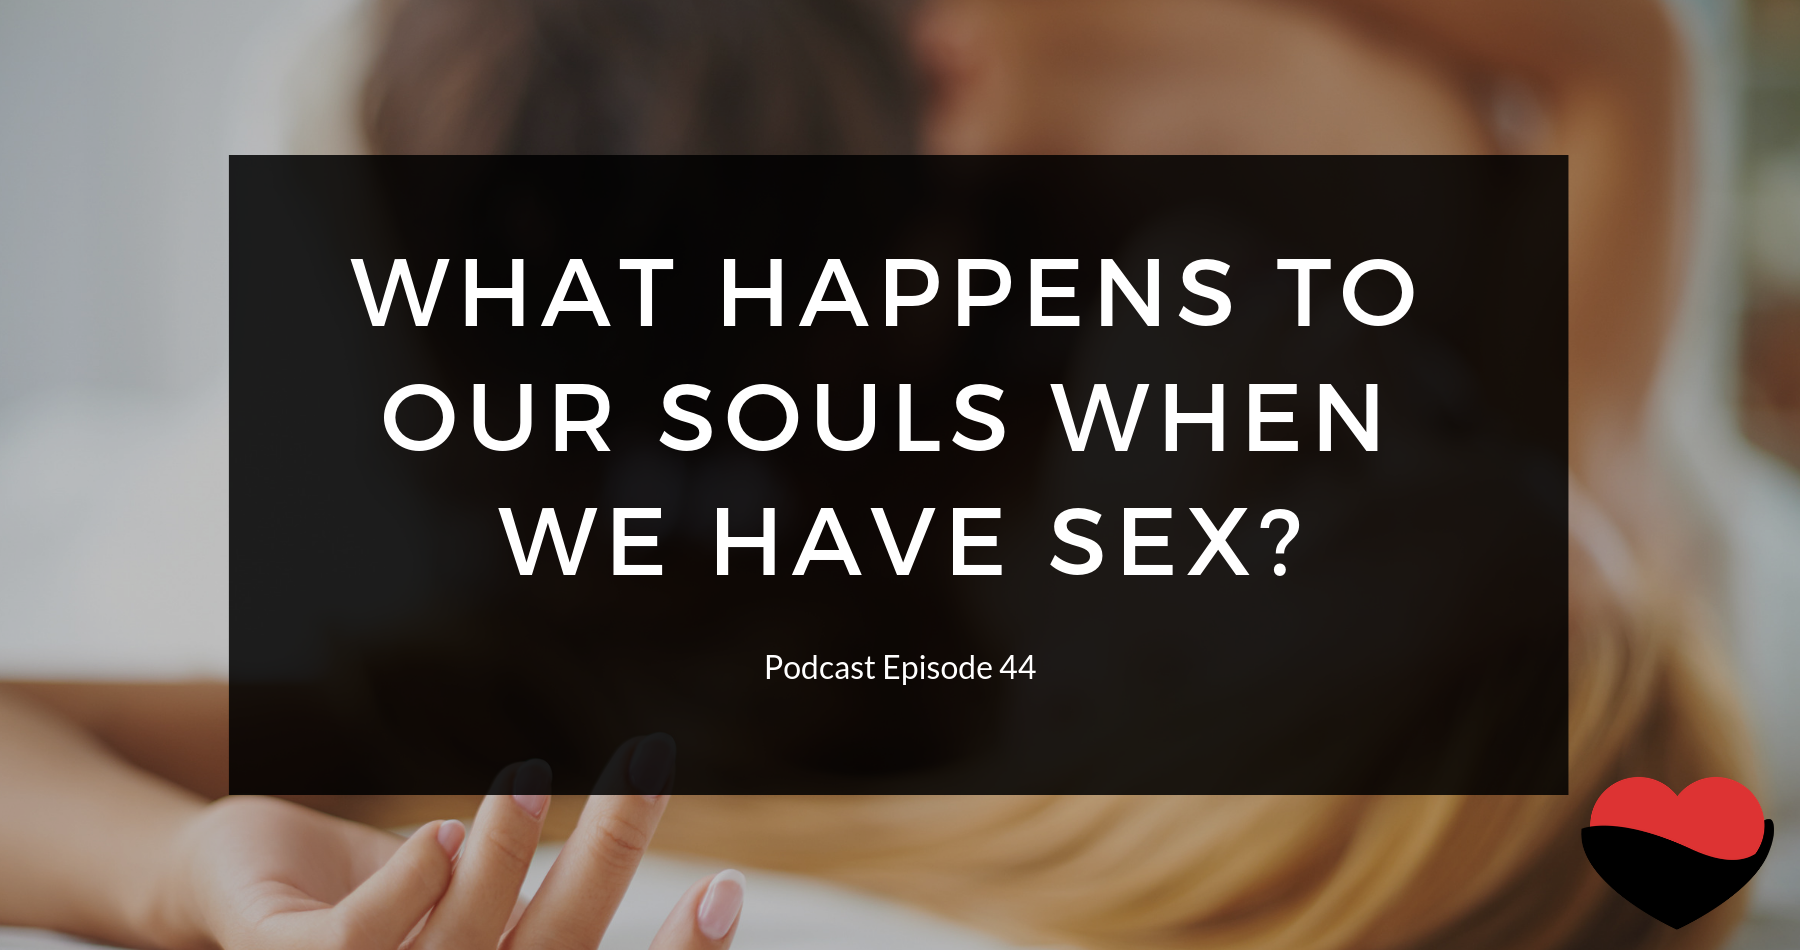 SWM 040 - What happens to our souls when we have sex